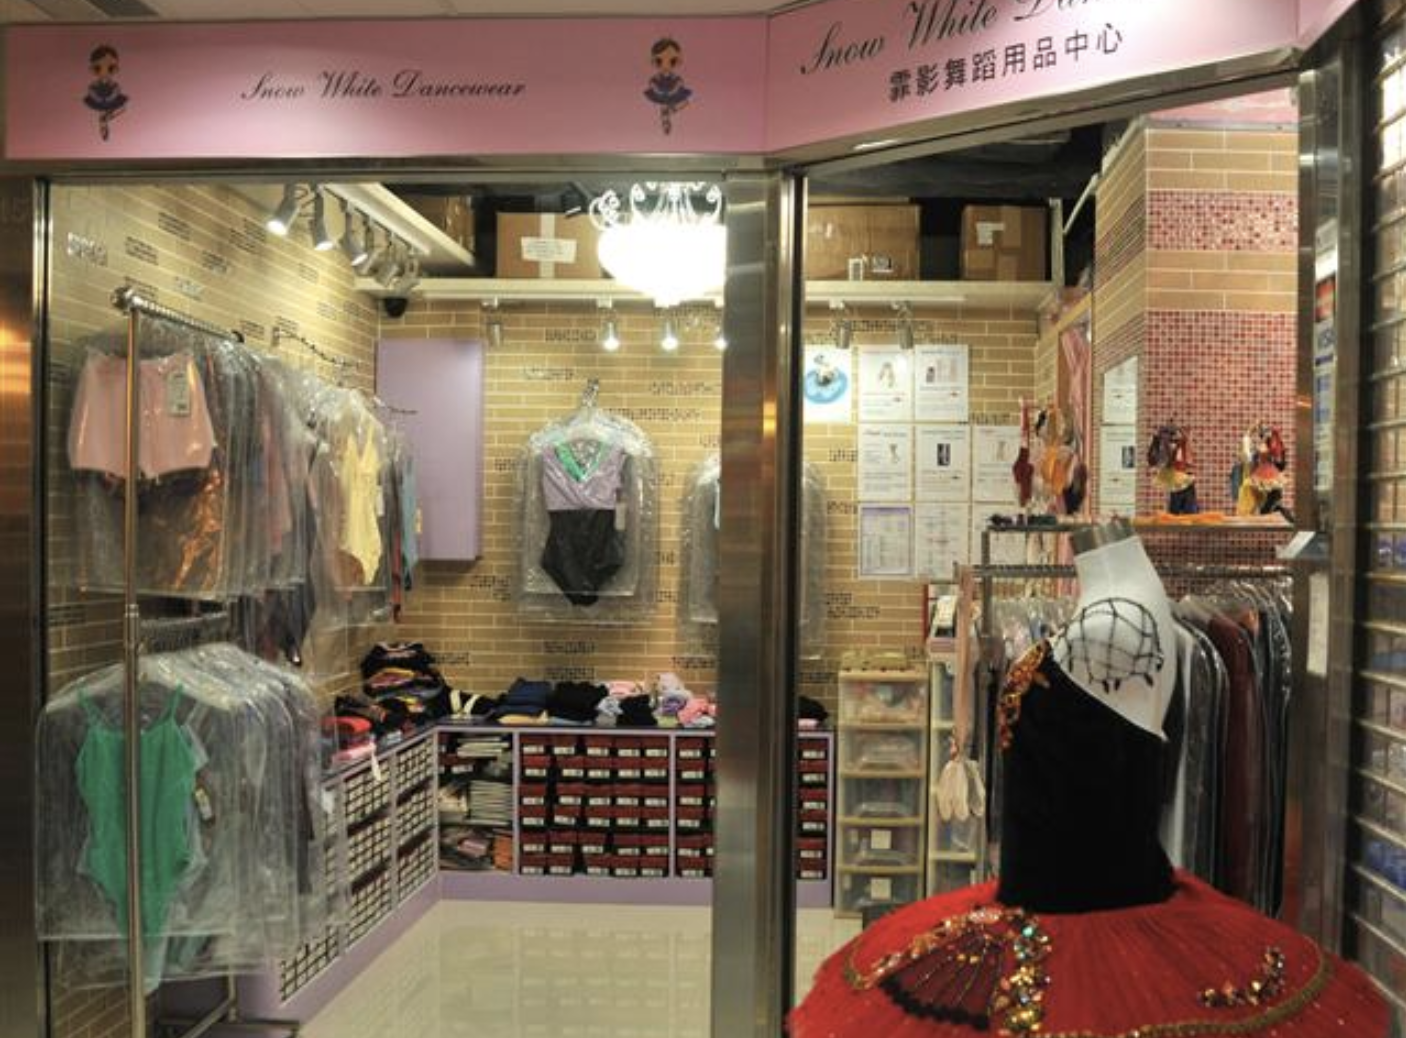 SNOW WHITE DANCEWEAR     Address : Shop S15-17, 2/F., Cathay 88, 125 Wan Chai Road, Wan Chai, Hong Kong   Tel : 2892 2842  Email :  sales@swballet.com   Website :  http://www.swballet.com   Facebook page :  https://www.facebook.com/swballet   Business hour : Mon-Sat 12:00pm-6:30pm (Sun & Public holiday closed)  Apparel just as lovely as its name. A very wide range from kids to adults specializing in the world's leading brands in ballet, like Sansha, Bloch, Capezio, Chacott, Grishko, Gaynor Minden, you name it, they got it! They also supply dance costumes with tutus made with the classic Russian style. But hey, it's not just ballet stuff in here, because they also have ballroom shoes and Latin American dance footwear available at their shop. Give them a ring, for any of your inquiries, and I'm pretty sure they'd be at your service.